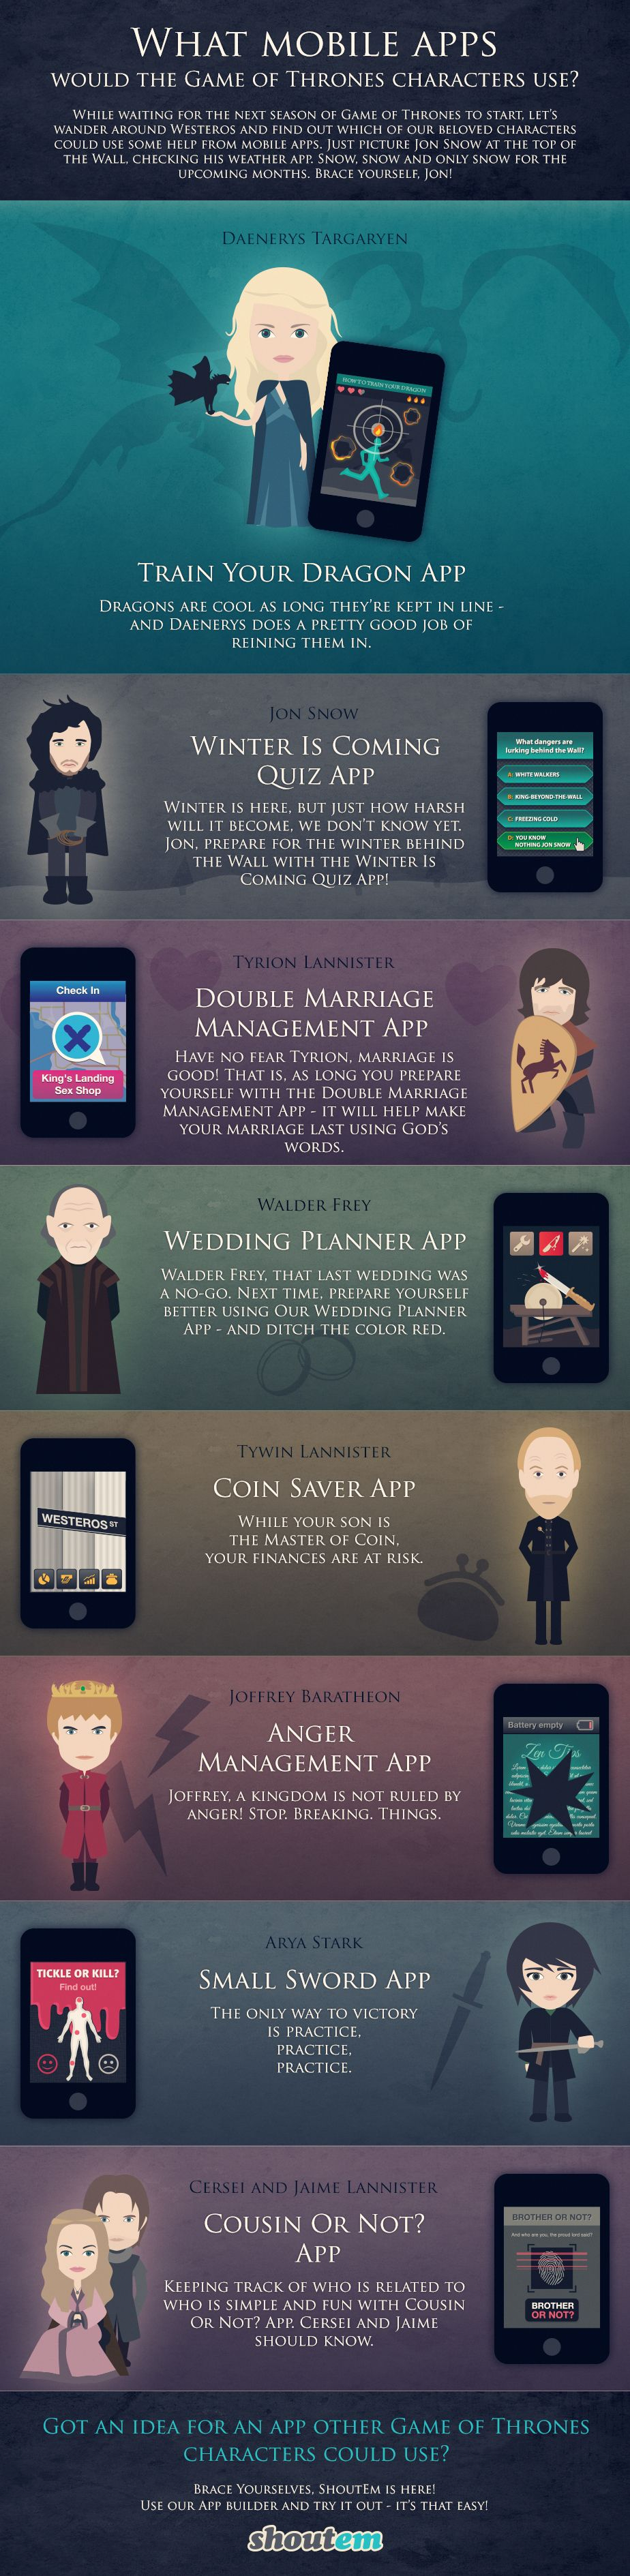 Infographic Game Of Thrones Characters Using Mobile Apps Shoutem Mobile App Creator Make App Mobile App Dragon App How Train Your Dragon